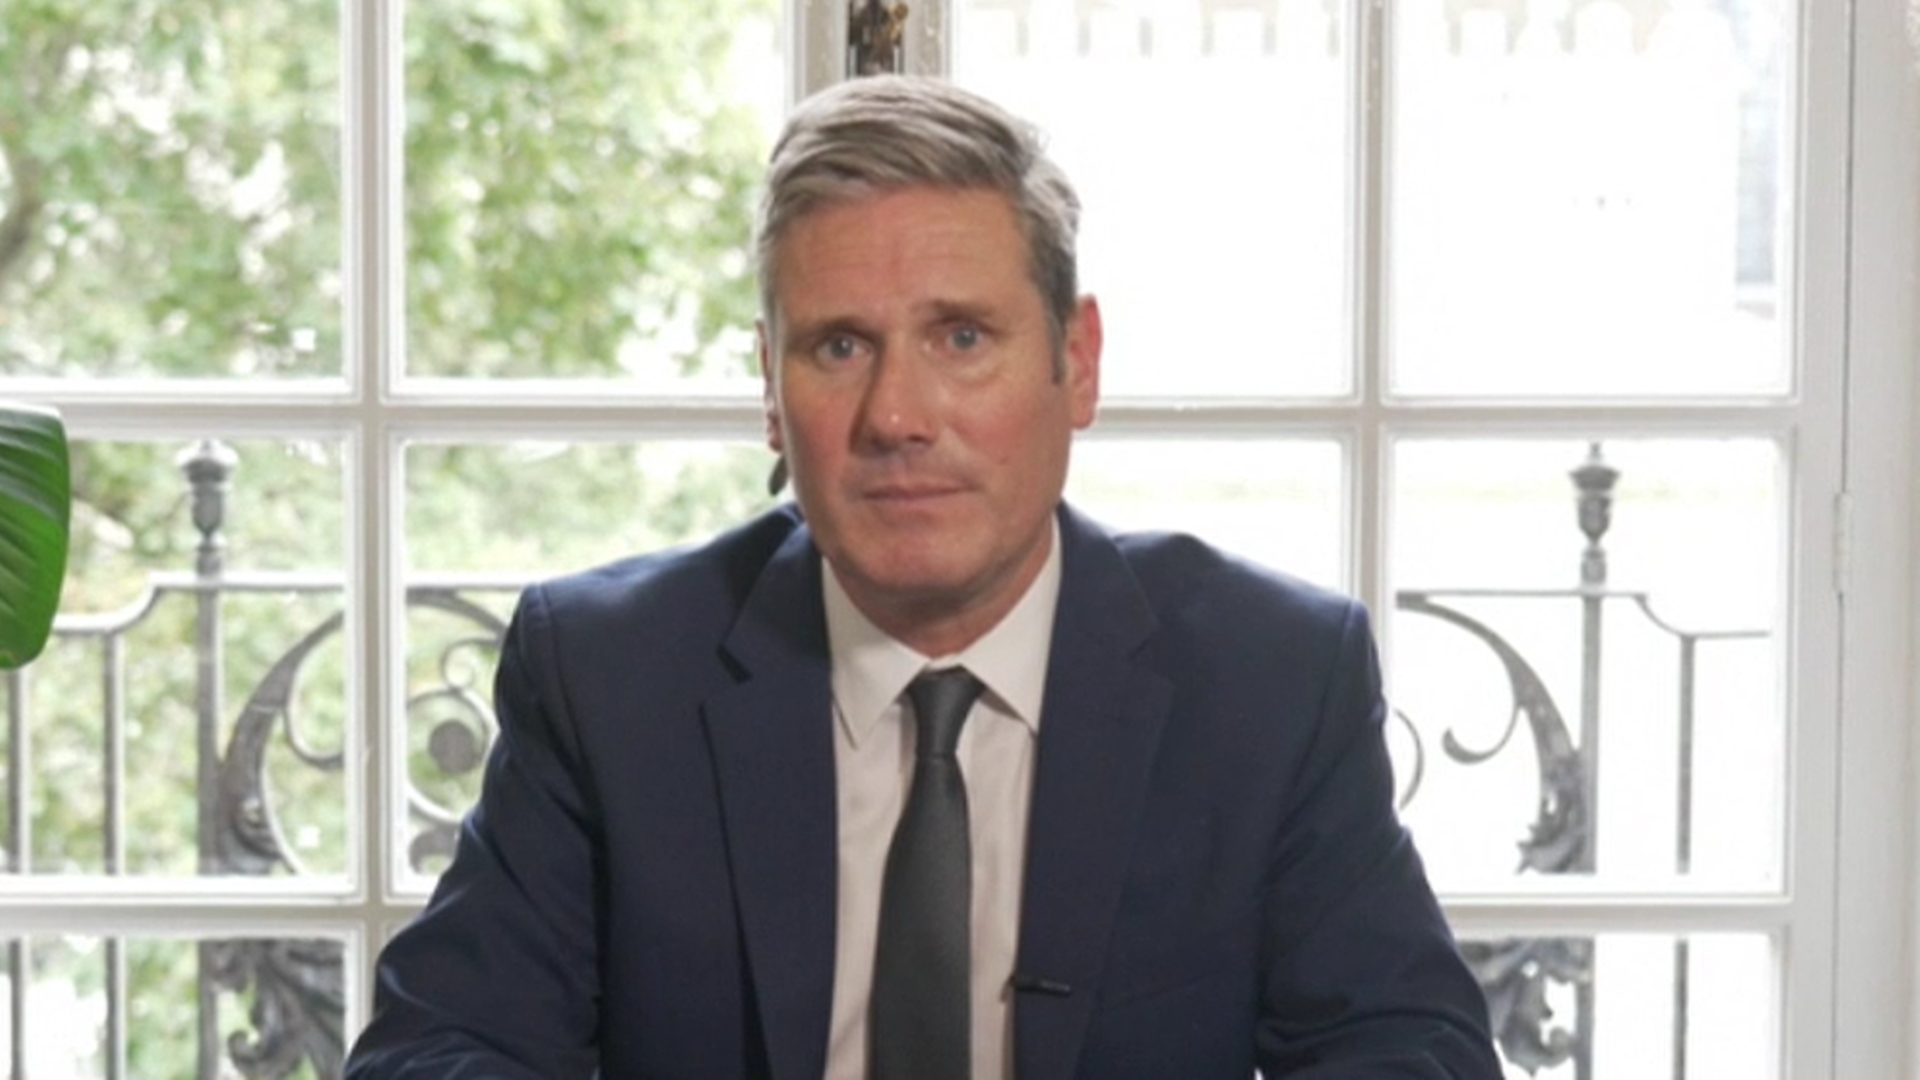 Keir Starmer addresses the nation in a televised address - Credit: BBC